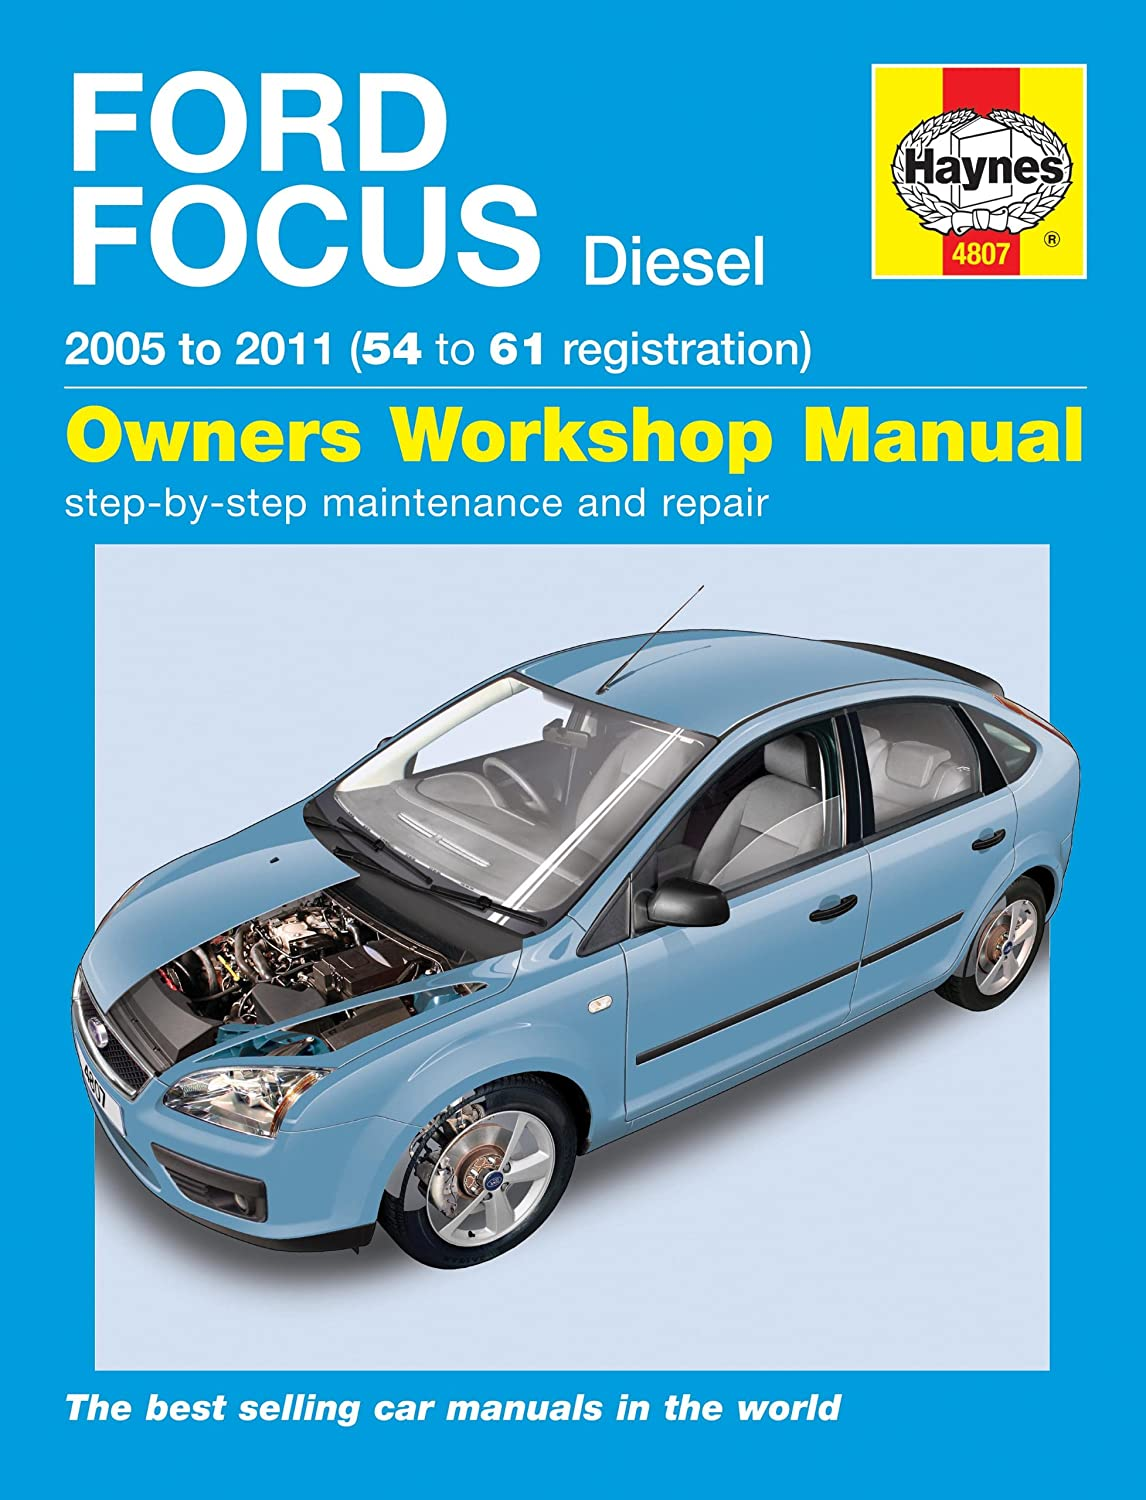 Ford Focus Diesel Service and Repair Manual: 2005-2011 (Haynes Service and  Repair Manuals): Martynn Randall: Amazon.co.uk: Car & Motorbike